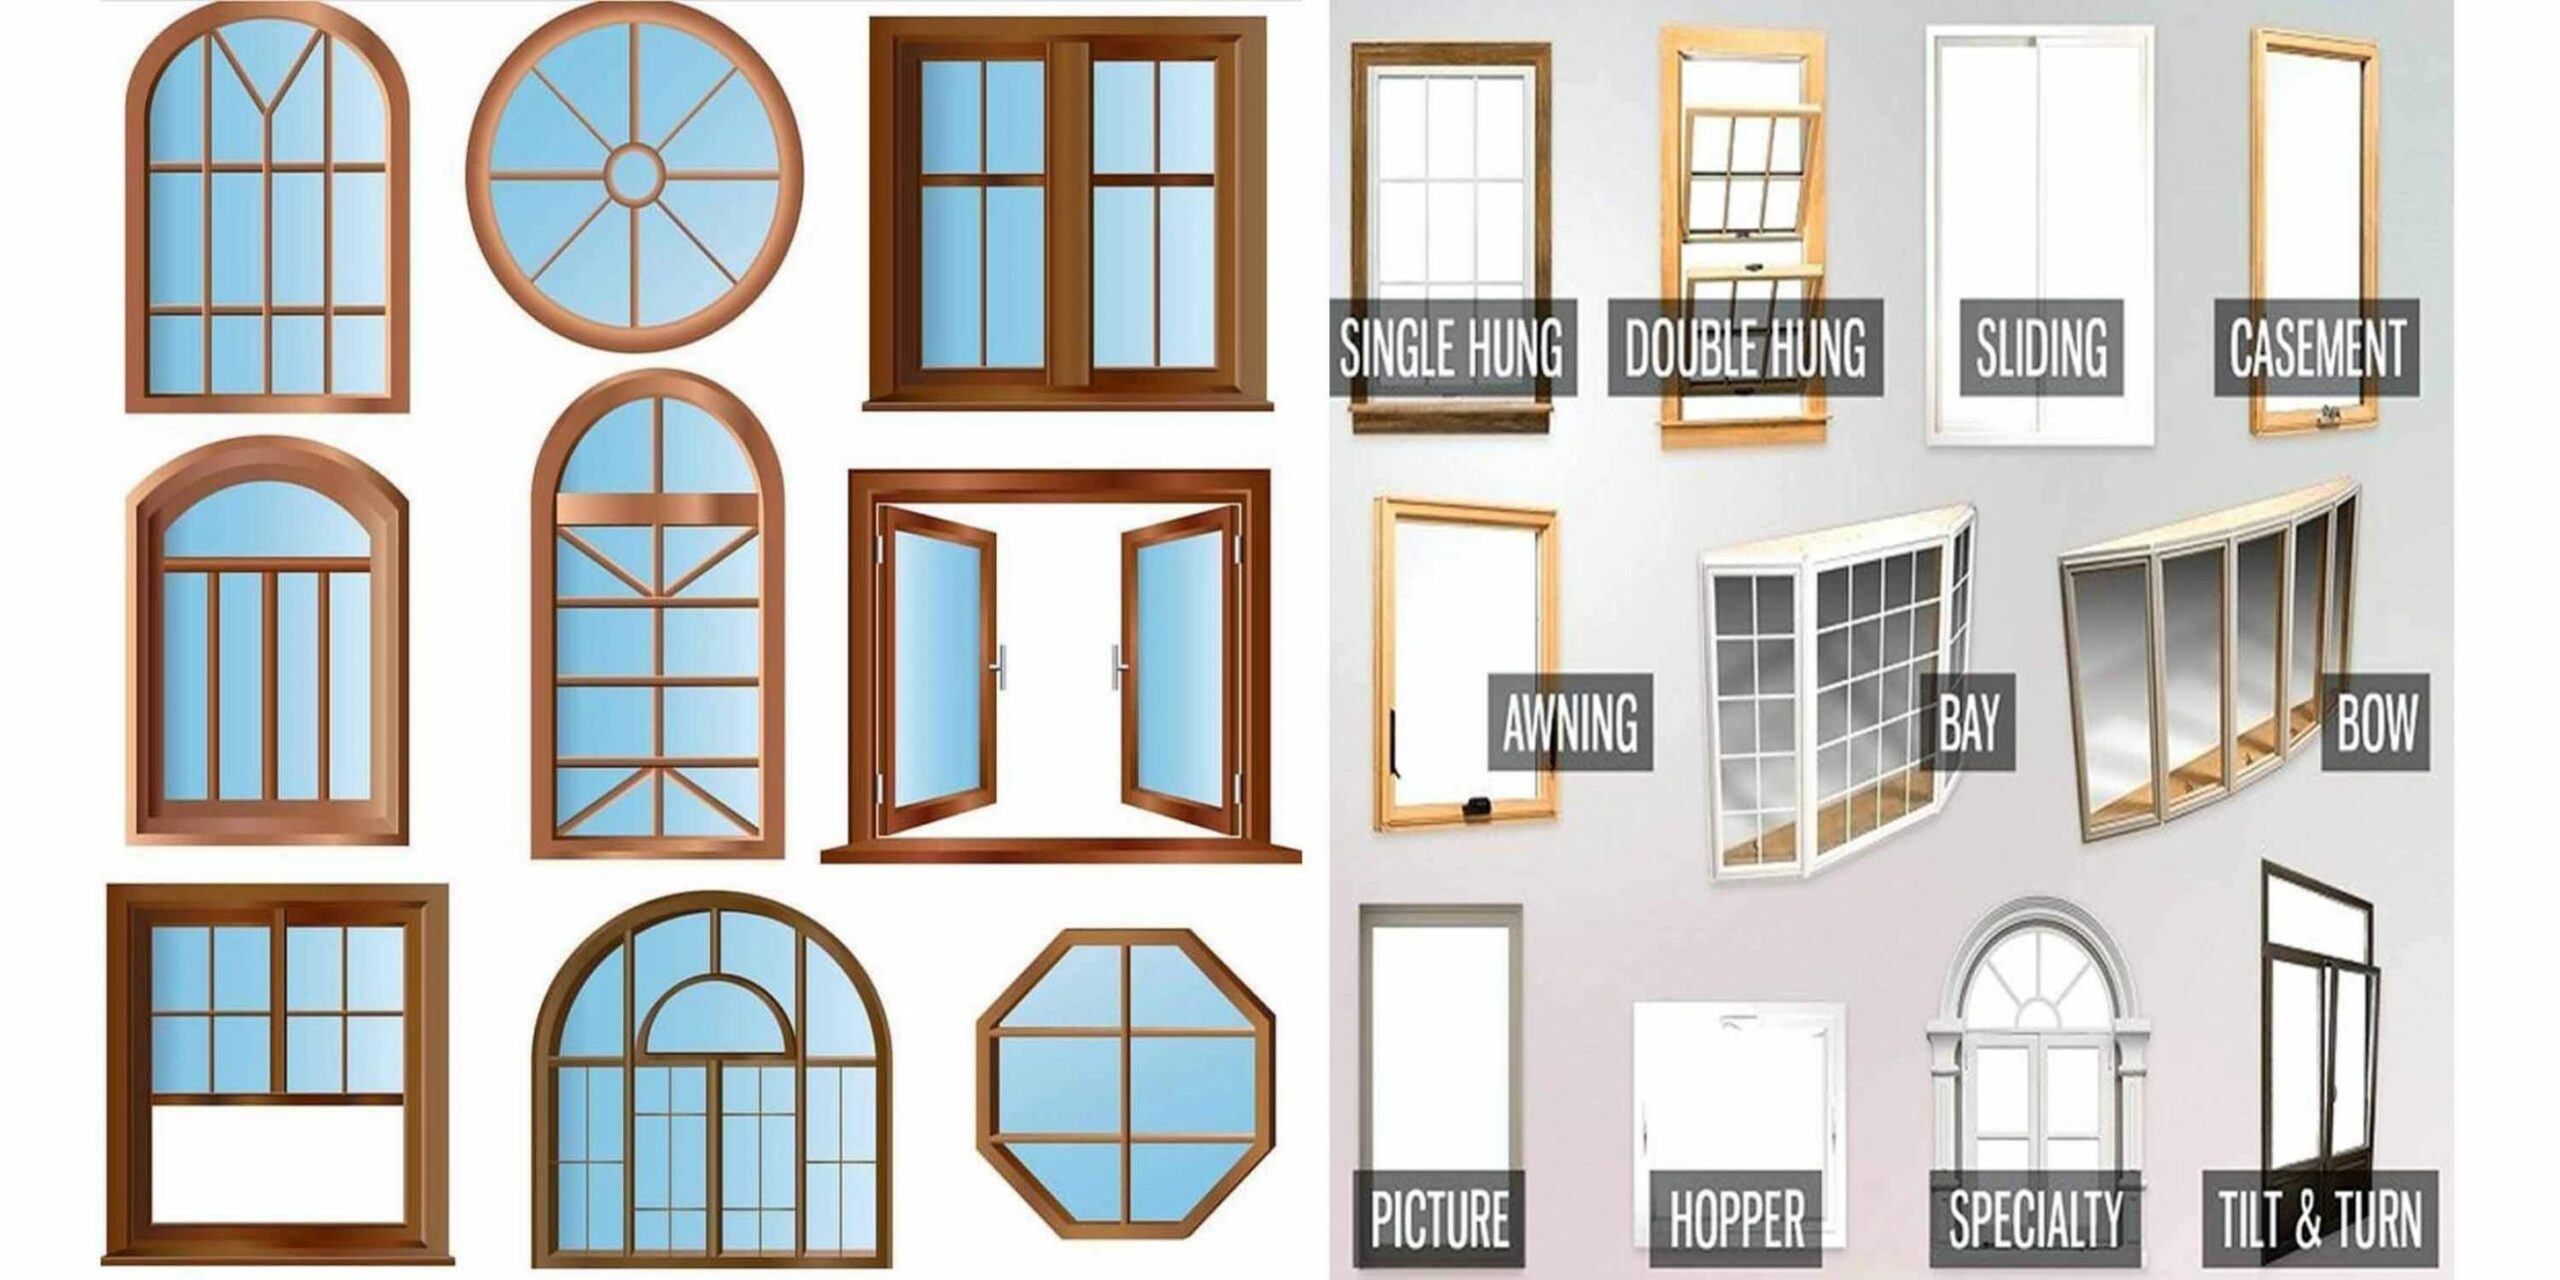 Top 9 Amazing Windows Design Ideas You Want To See Them ..